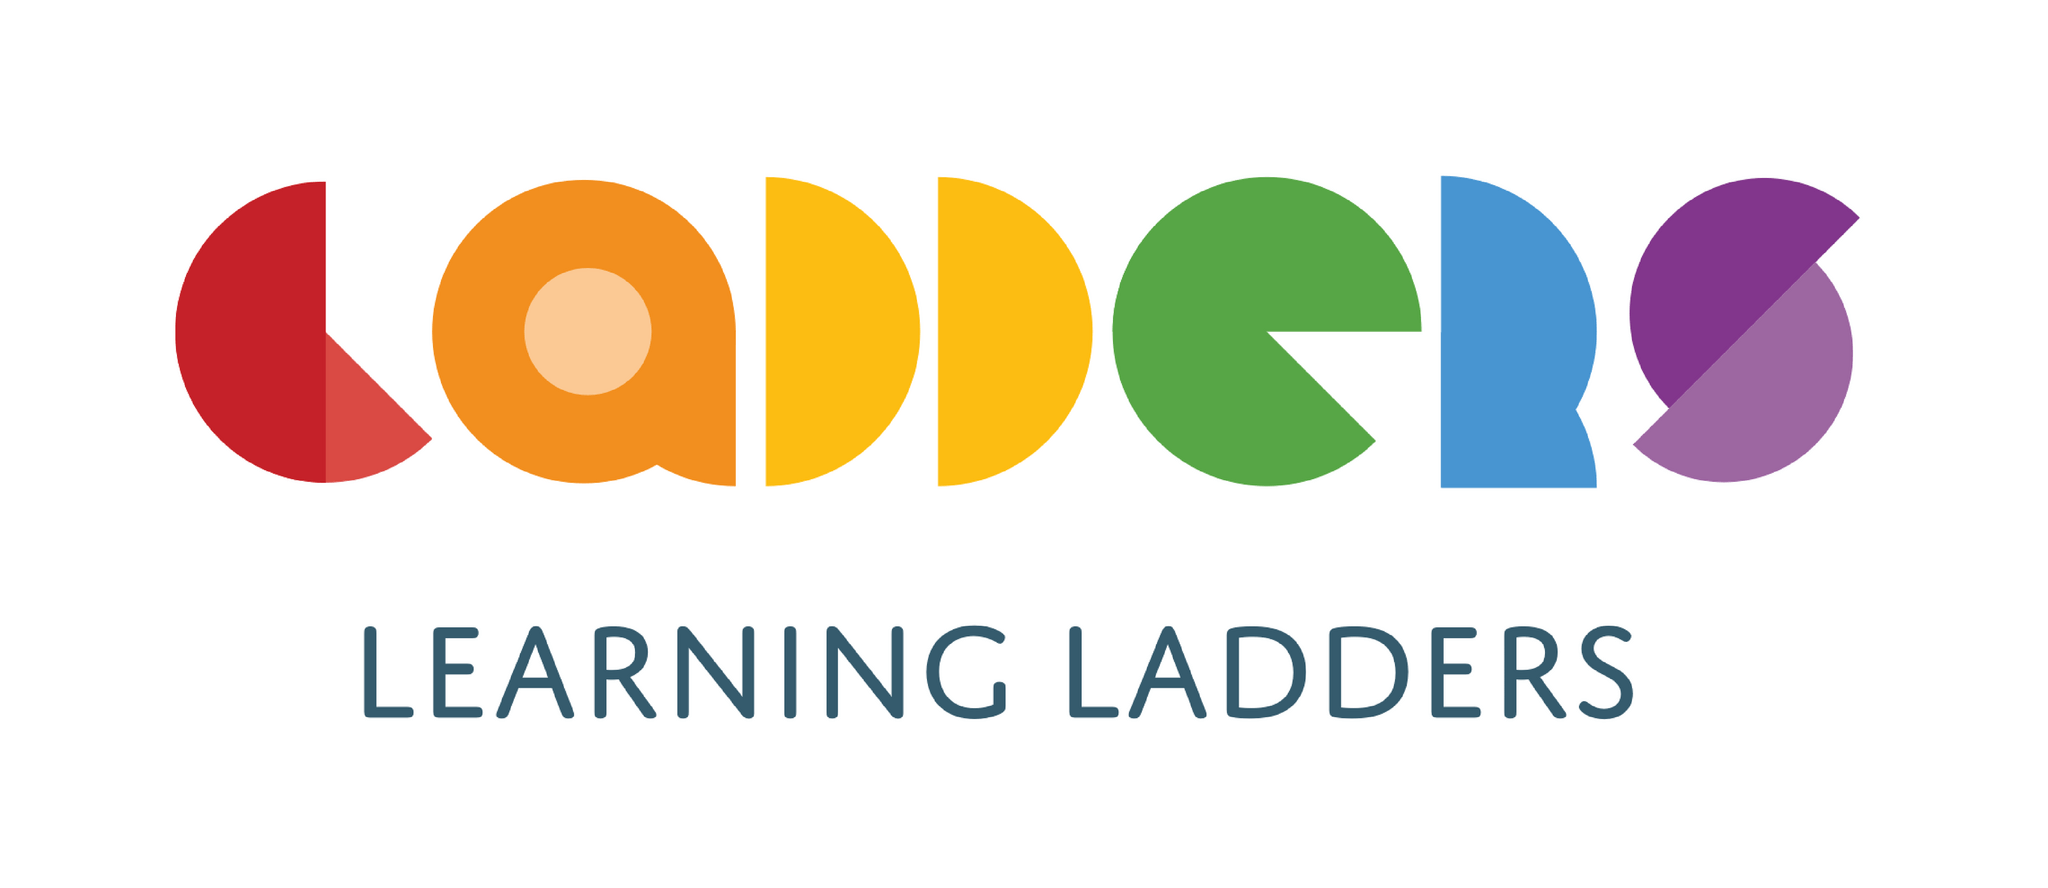 Learning Ladders parental engagement app